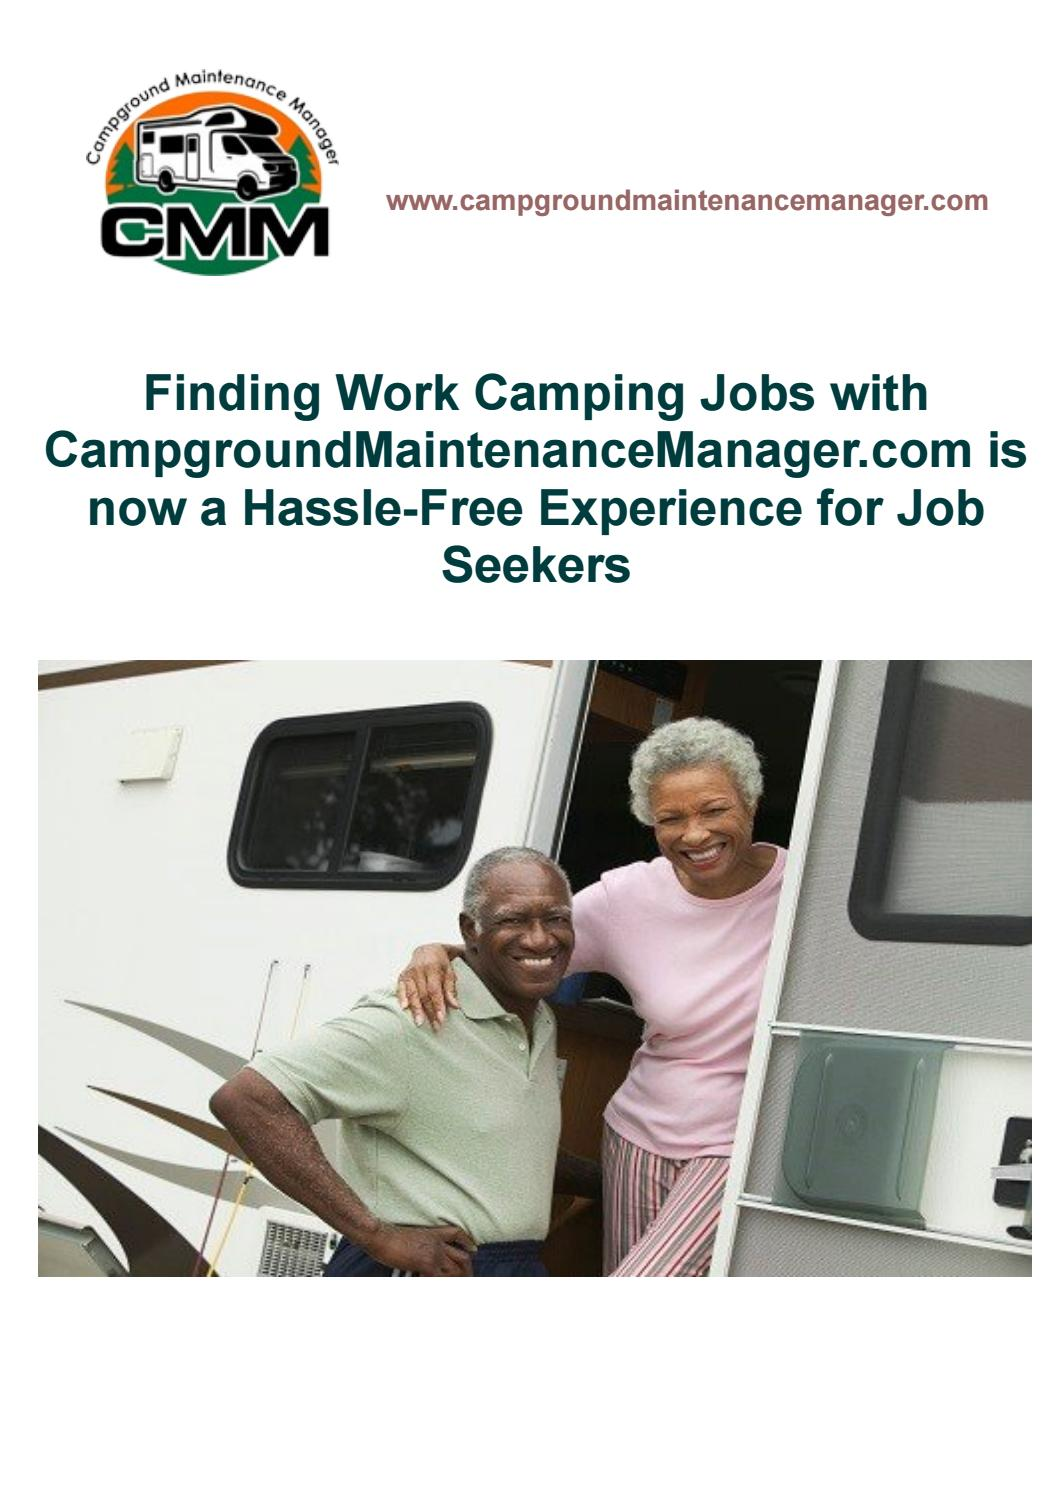 Finding Work Camping Jobs with CampgroundMaintenanceManager.com is now a Hassle-Free Experience